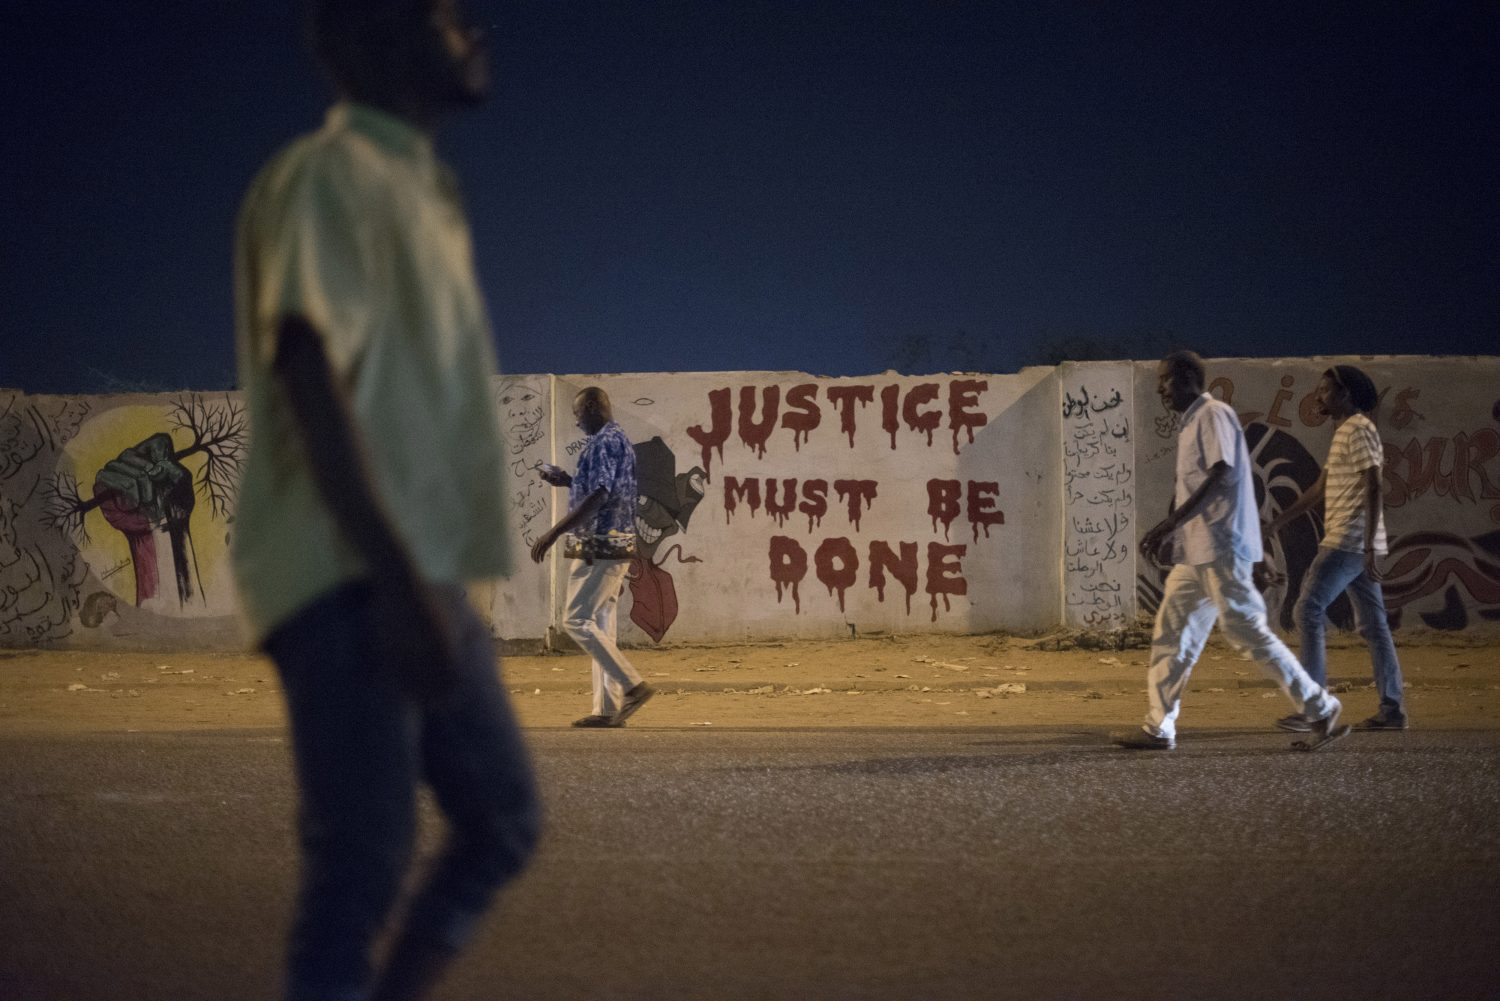 Citizens in Sudan during citizen's protests